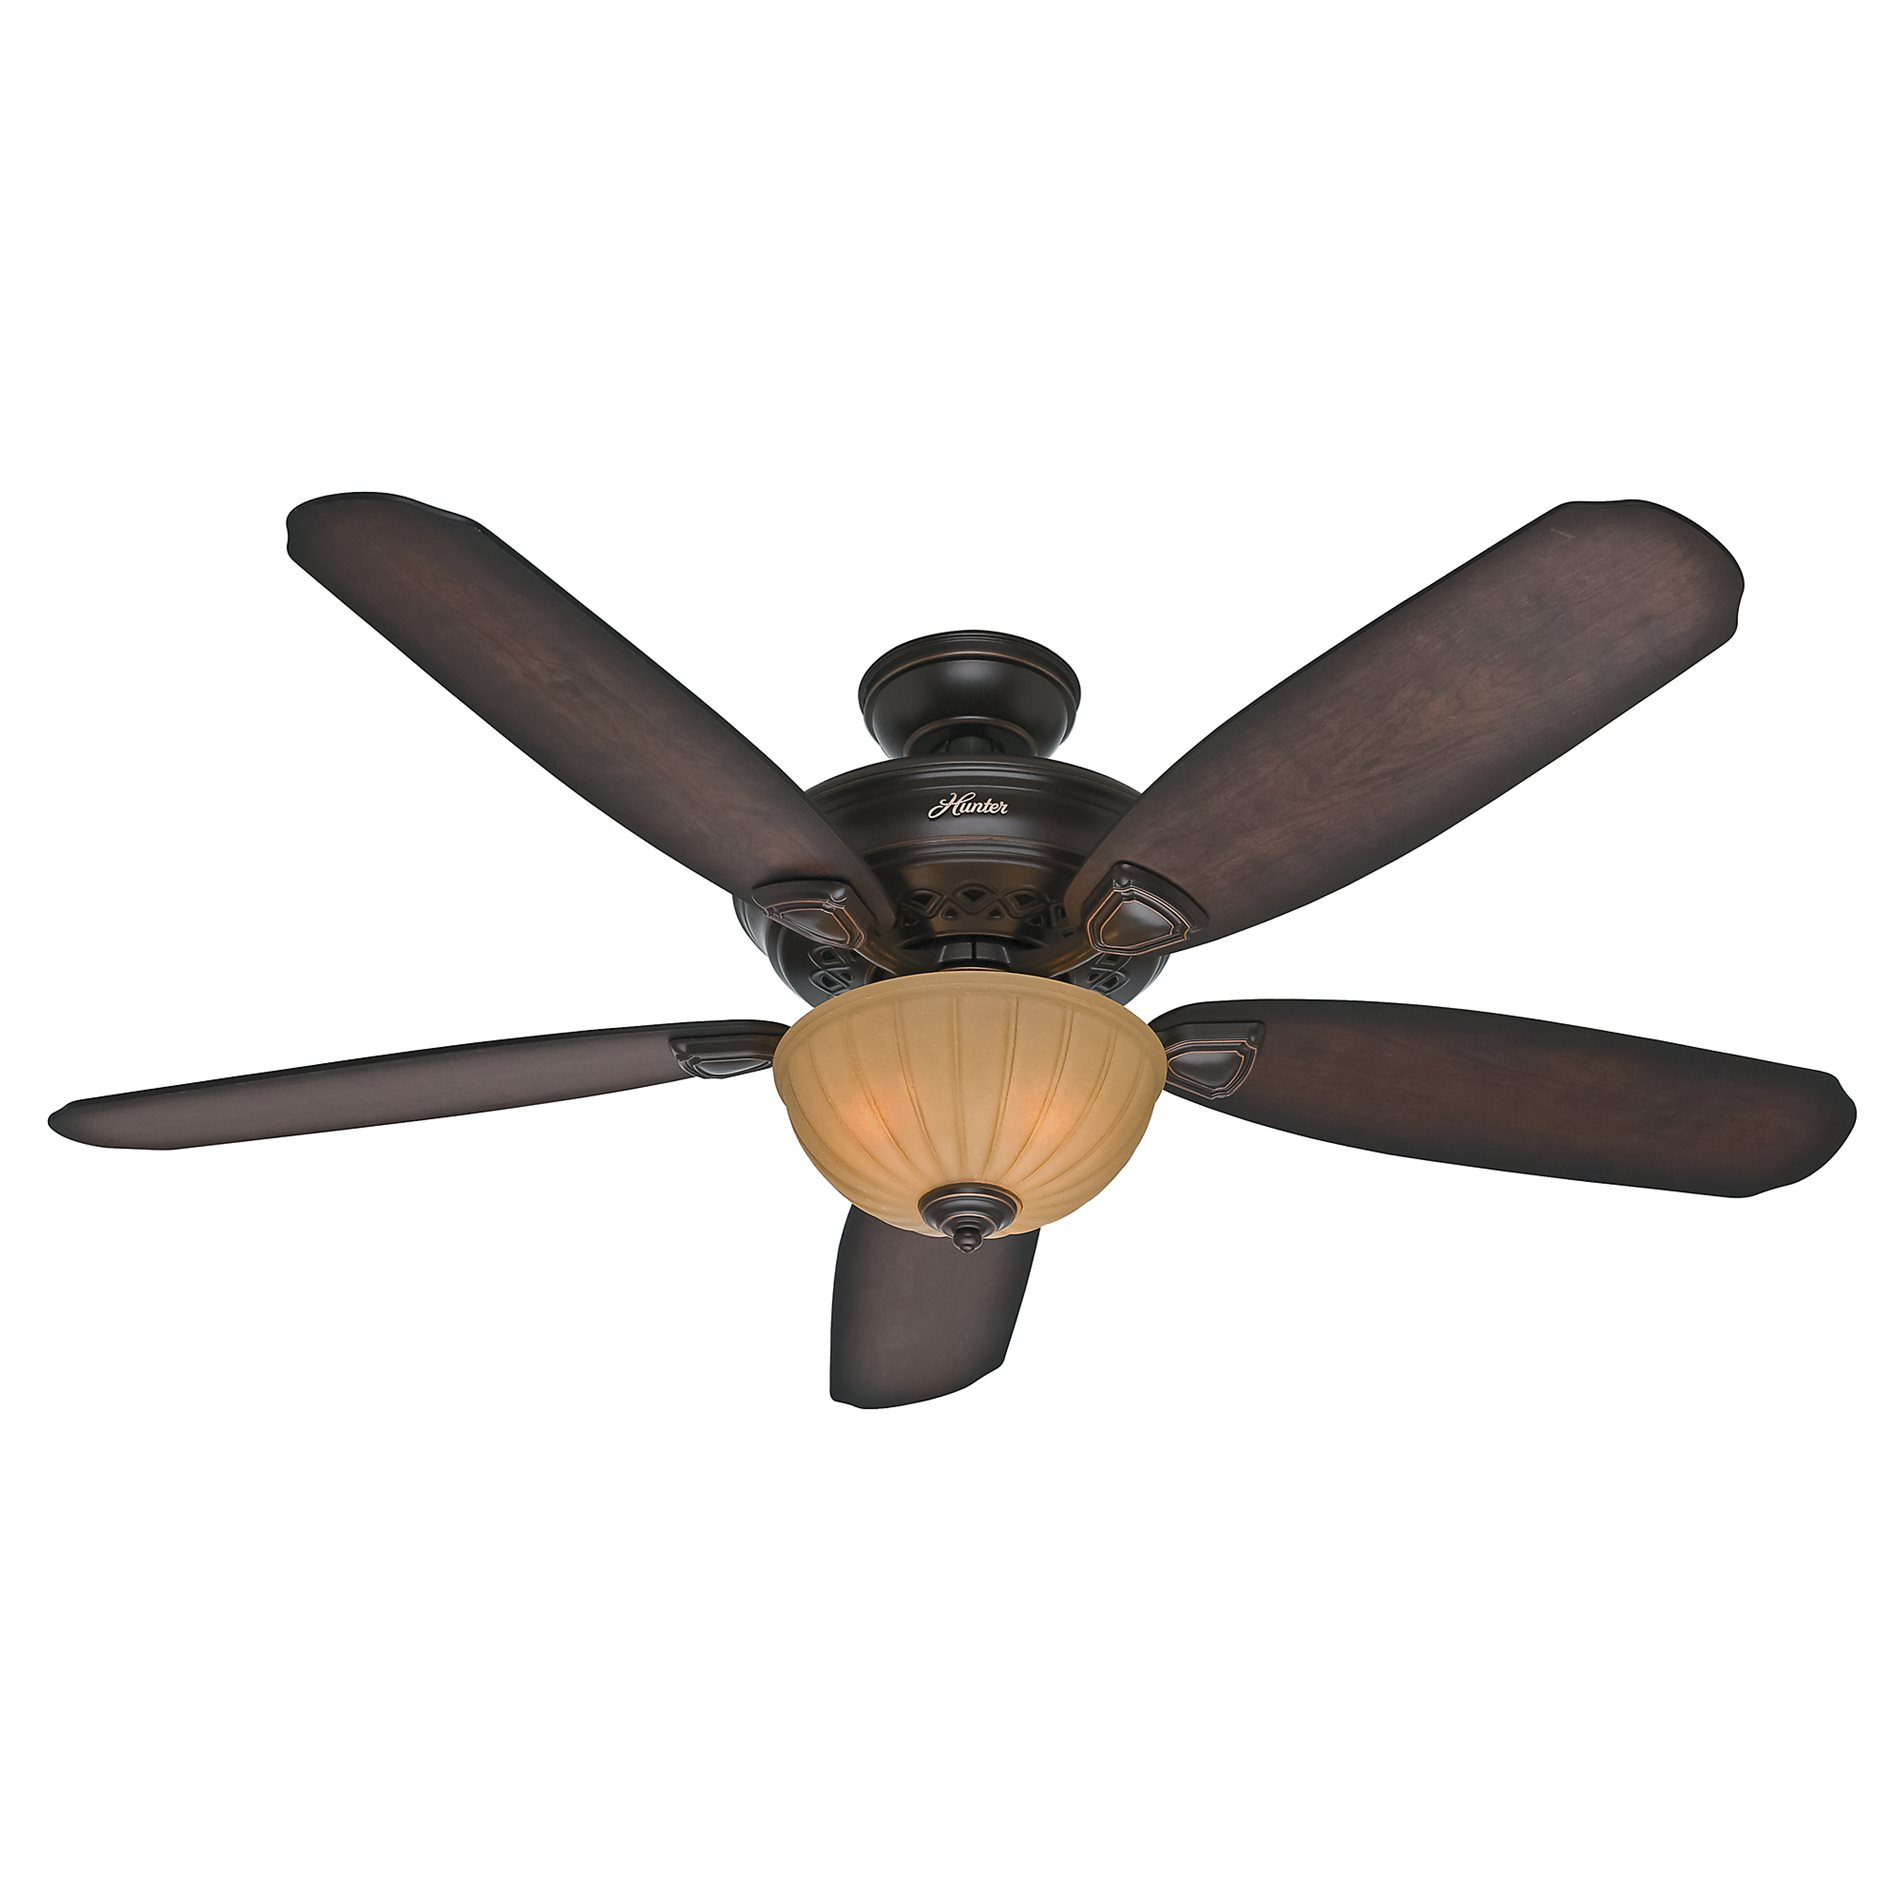 Hunter large room ceiling fan with light ebay for Ceiling fan size for room